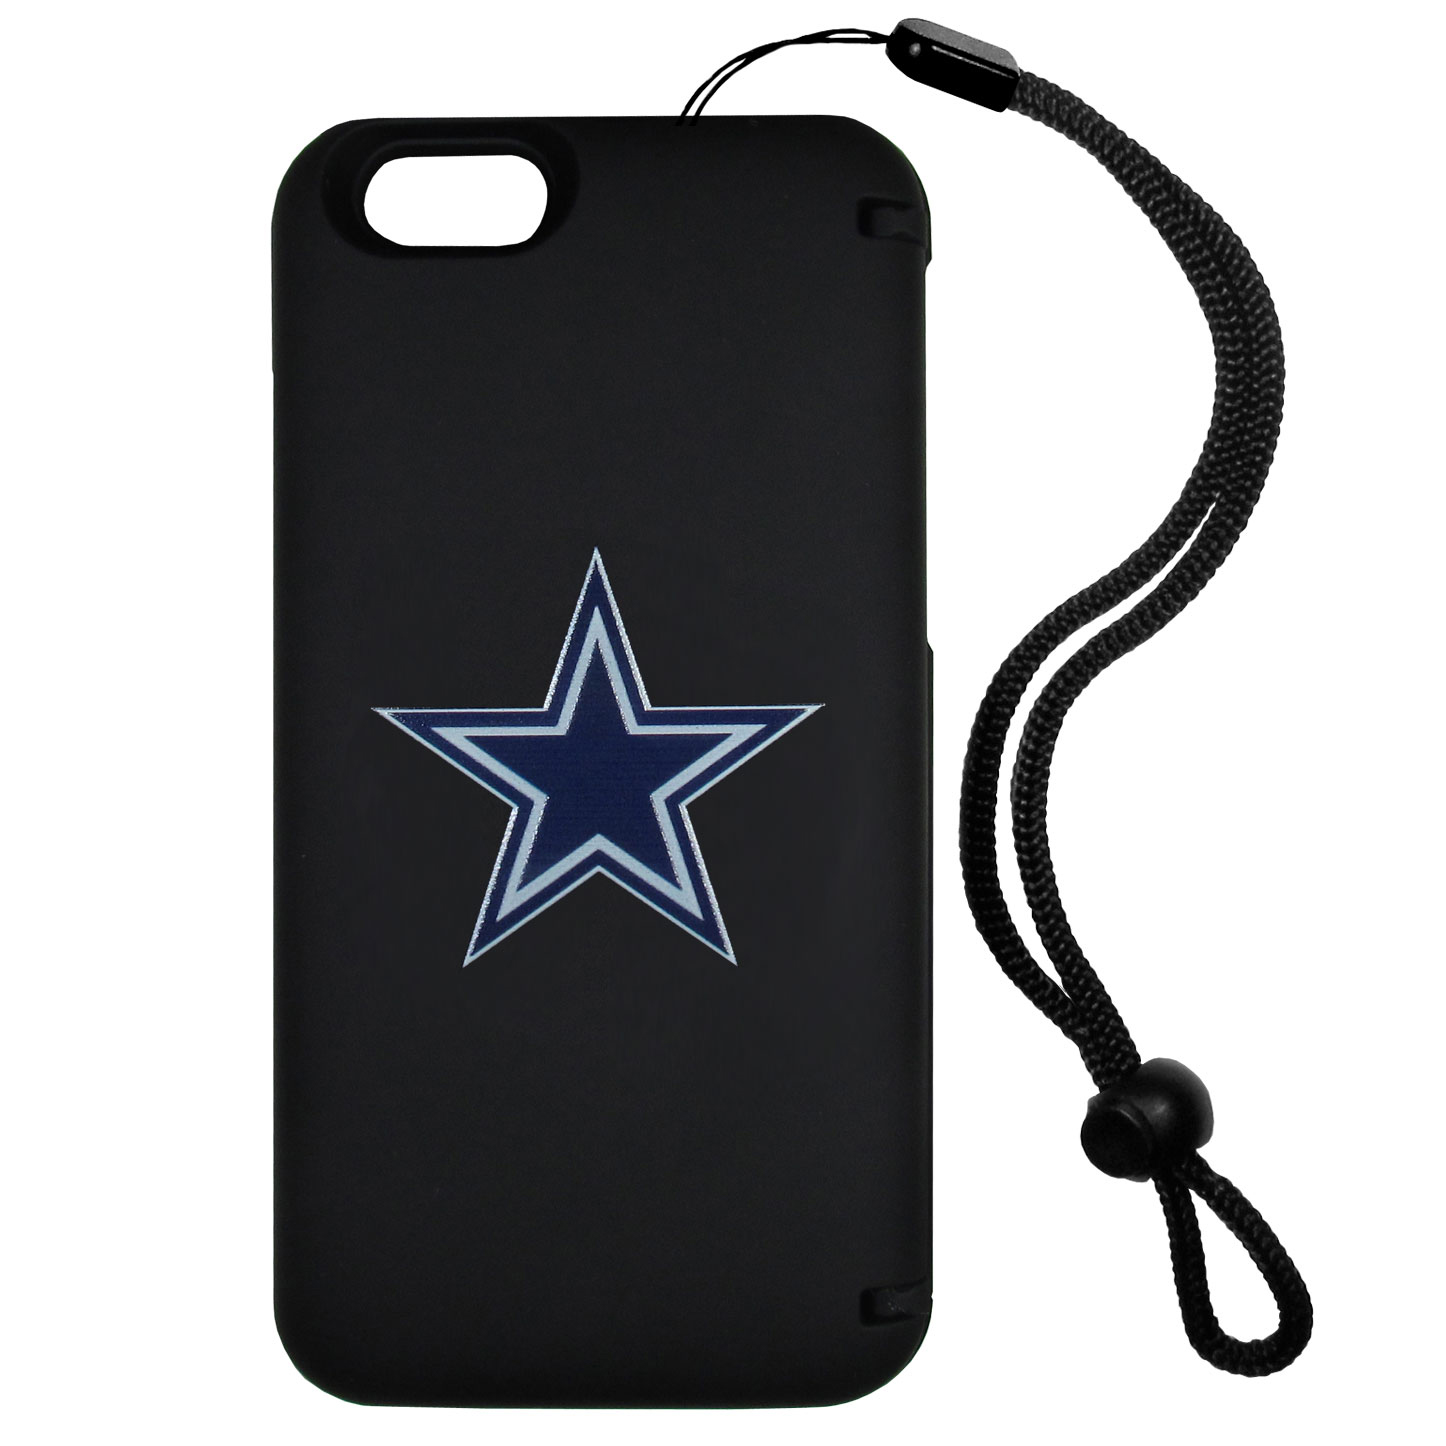 Dallas Cowboys iPhone 6 Plus Everything Case - This case really does have everything but the kitchen sink! The hidden compartment lets you keep your cards, money and tickets to the big game safe and secure and has a compact mirror so you can make sure your game face is ready to go. It also comes with a kickstand to make chatting and watching videos a breeze. The wrist strap allows you to travel with ease with your everything case. If that's not enough, it also comes with the Dallas Cowboys logo printed in expert detail on the front.